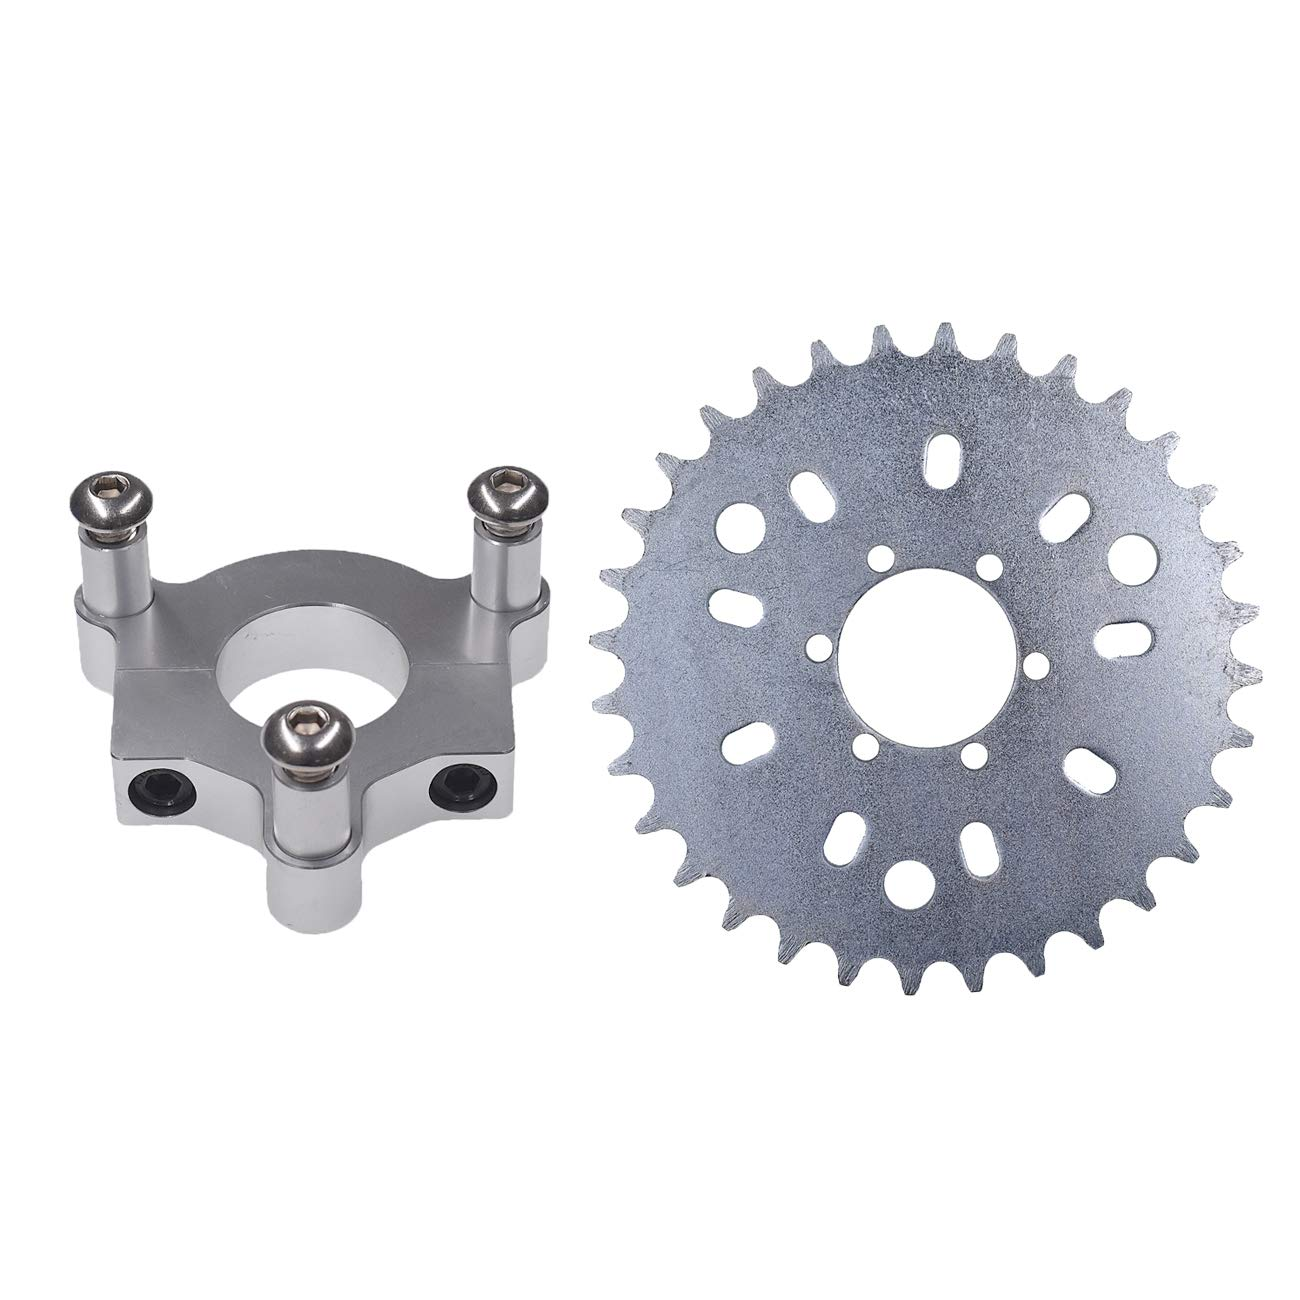 UAUS 32 T Sprocket with CNC Adapter Fit 1.5 inch hub 415 Chain 49cc 50cc 66cc 80cc 2 Stroke Motorized Bike Motorised Bicycle by UAUS